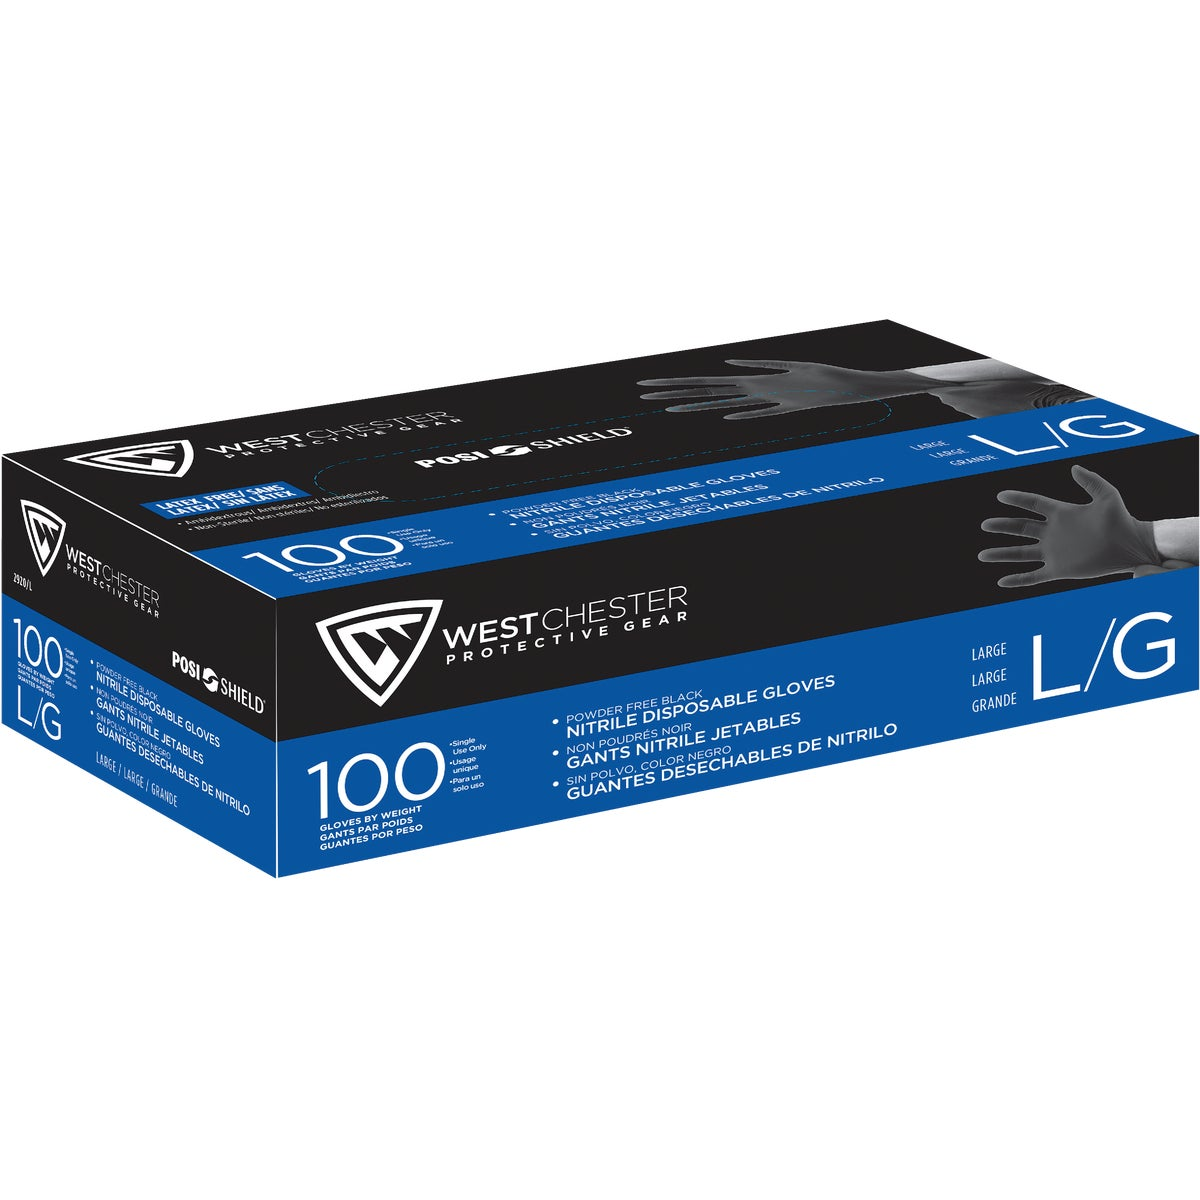 LG BLACK NITRILE GLOVES - 2920/L by West Chester Incom